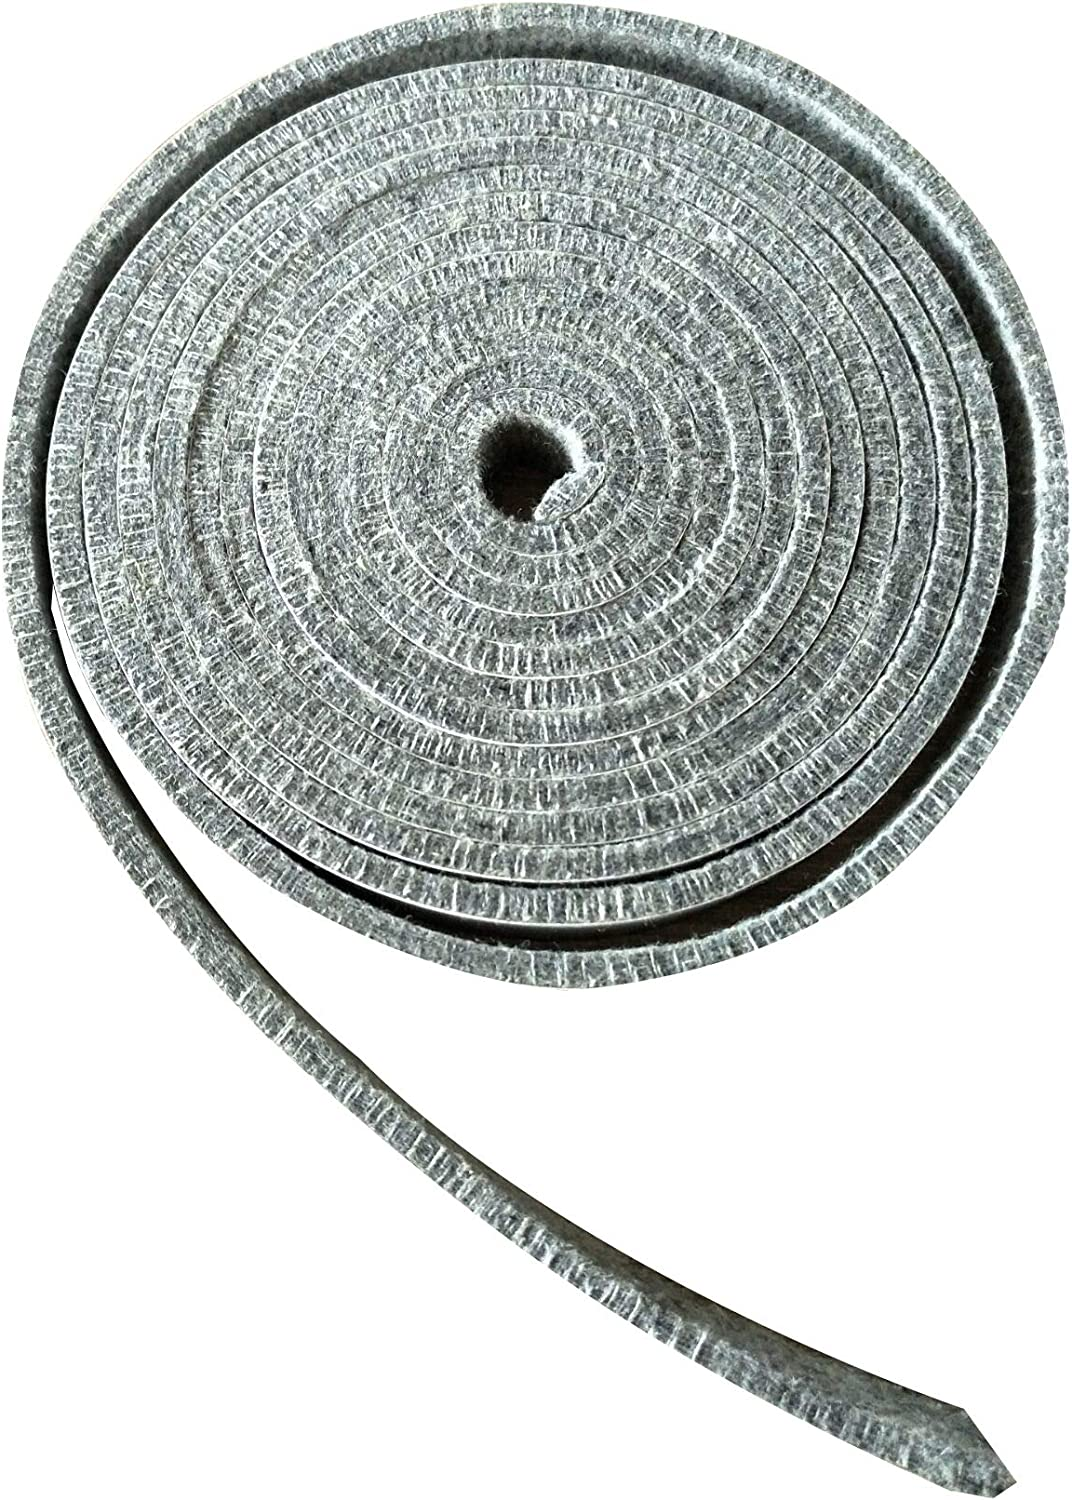 "BroilPro Accessories 800F High Temp Rated BBQ Smoker Gasket Self Stick Felt 15ft Long, 3/4"" Wide, 1/5"" Thick"